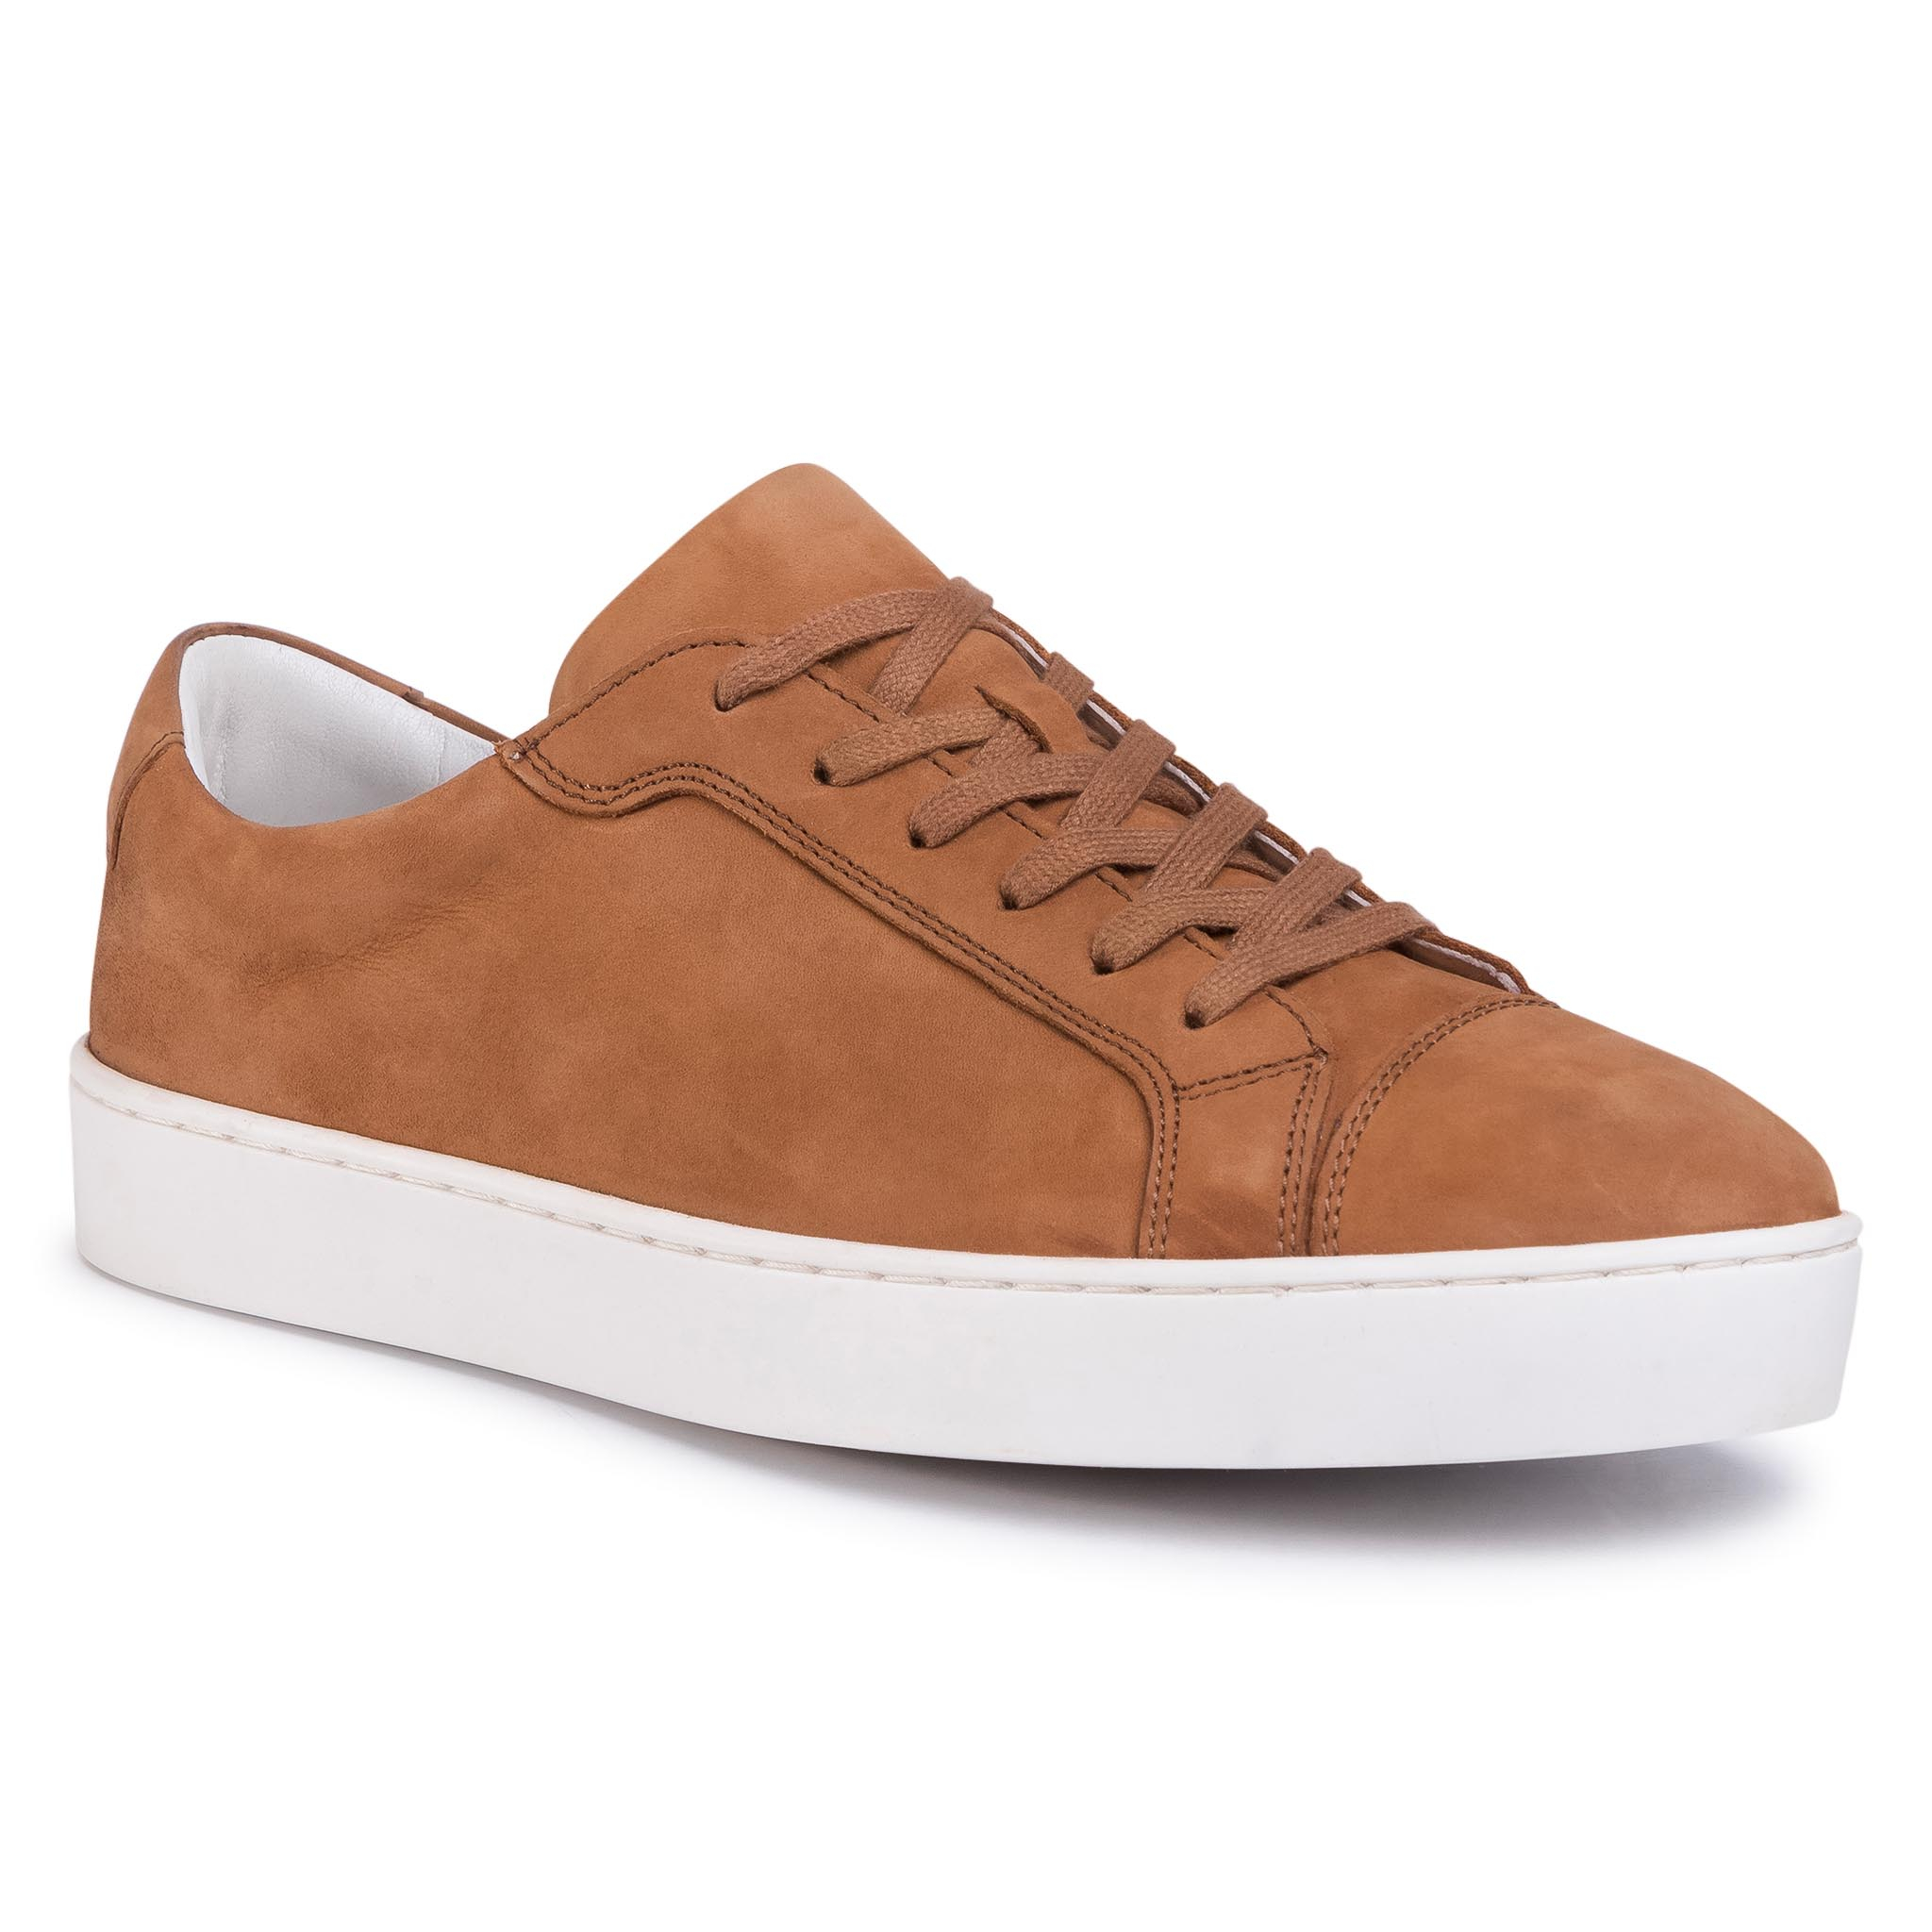 Sneakers GINO ROSSI - MI07-A973-A802-05 Camel New